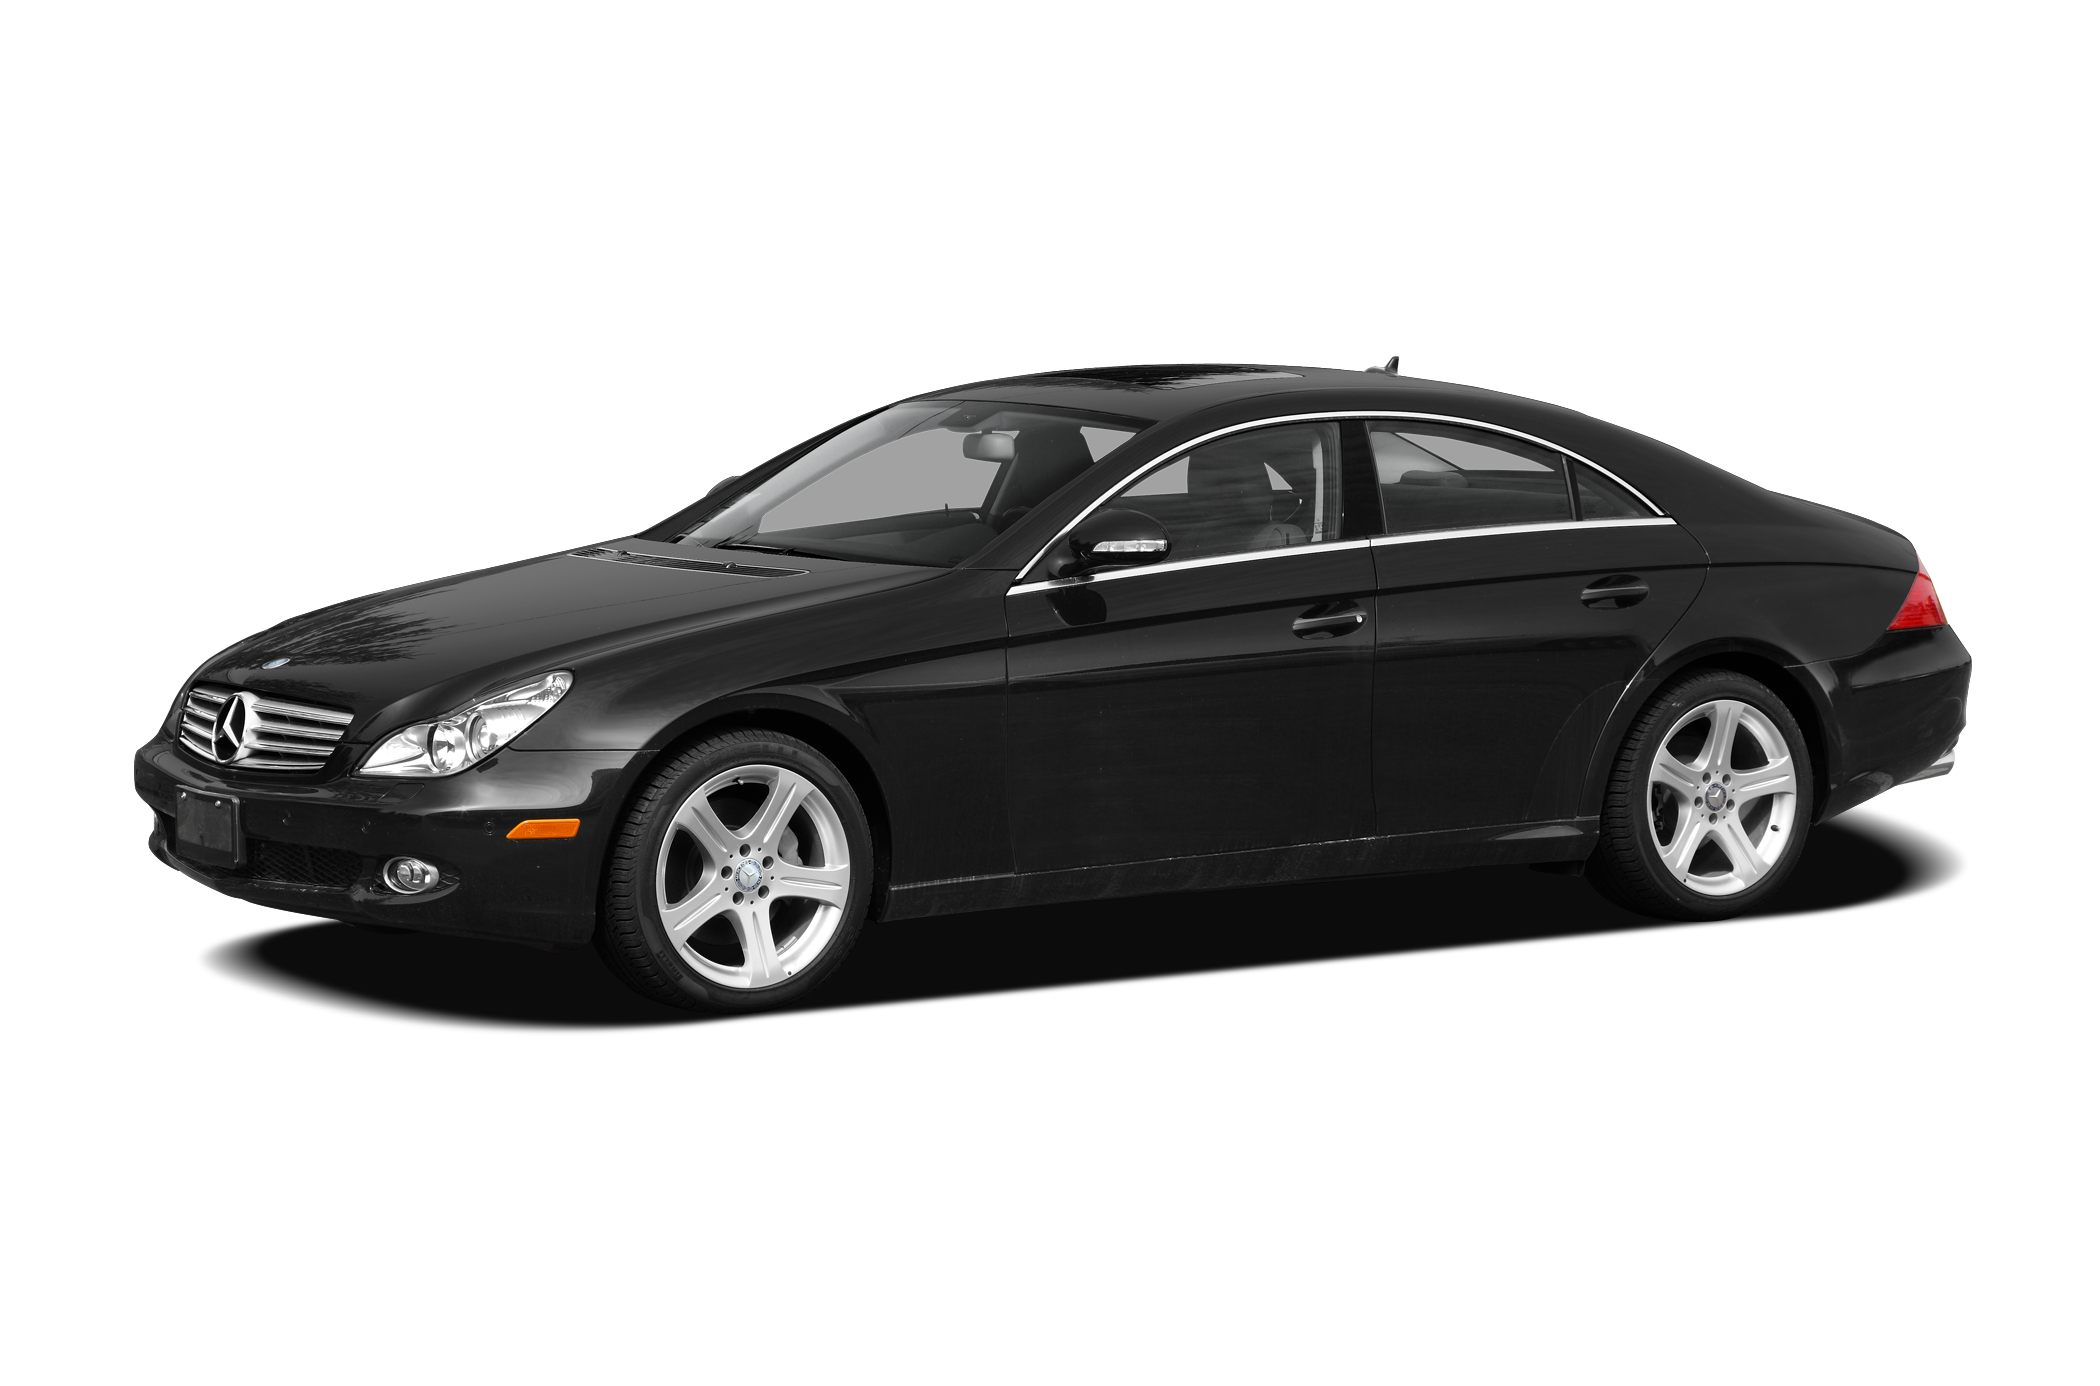 2008 Mercedes Benz CLS Class Specs and Prices